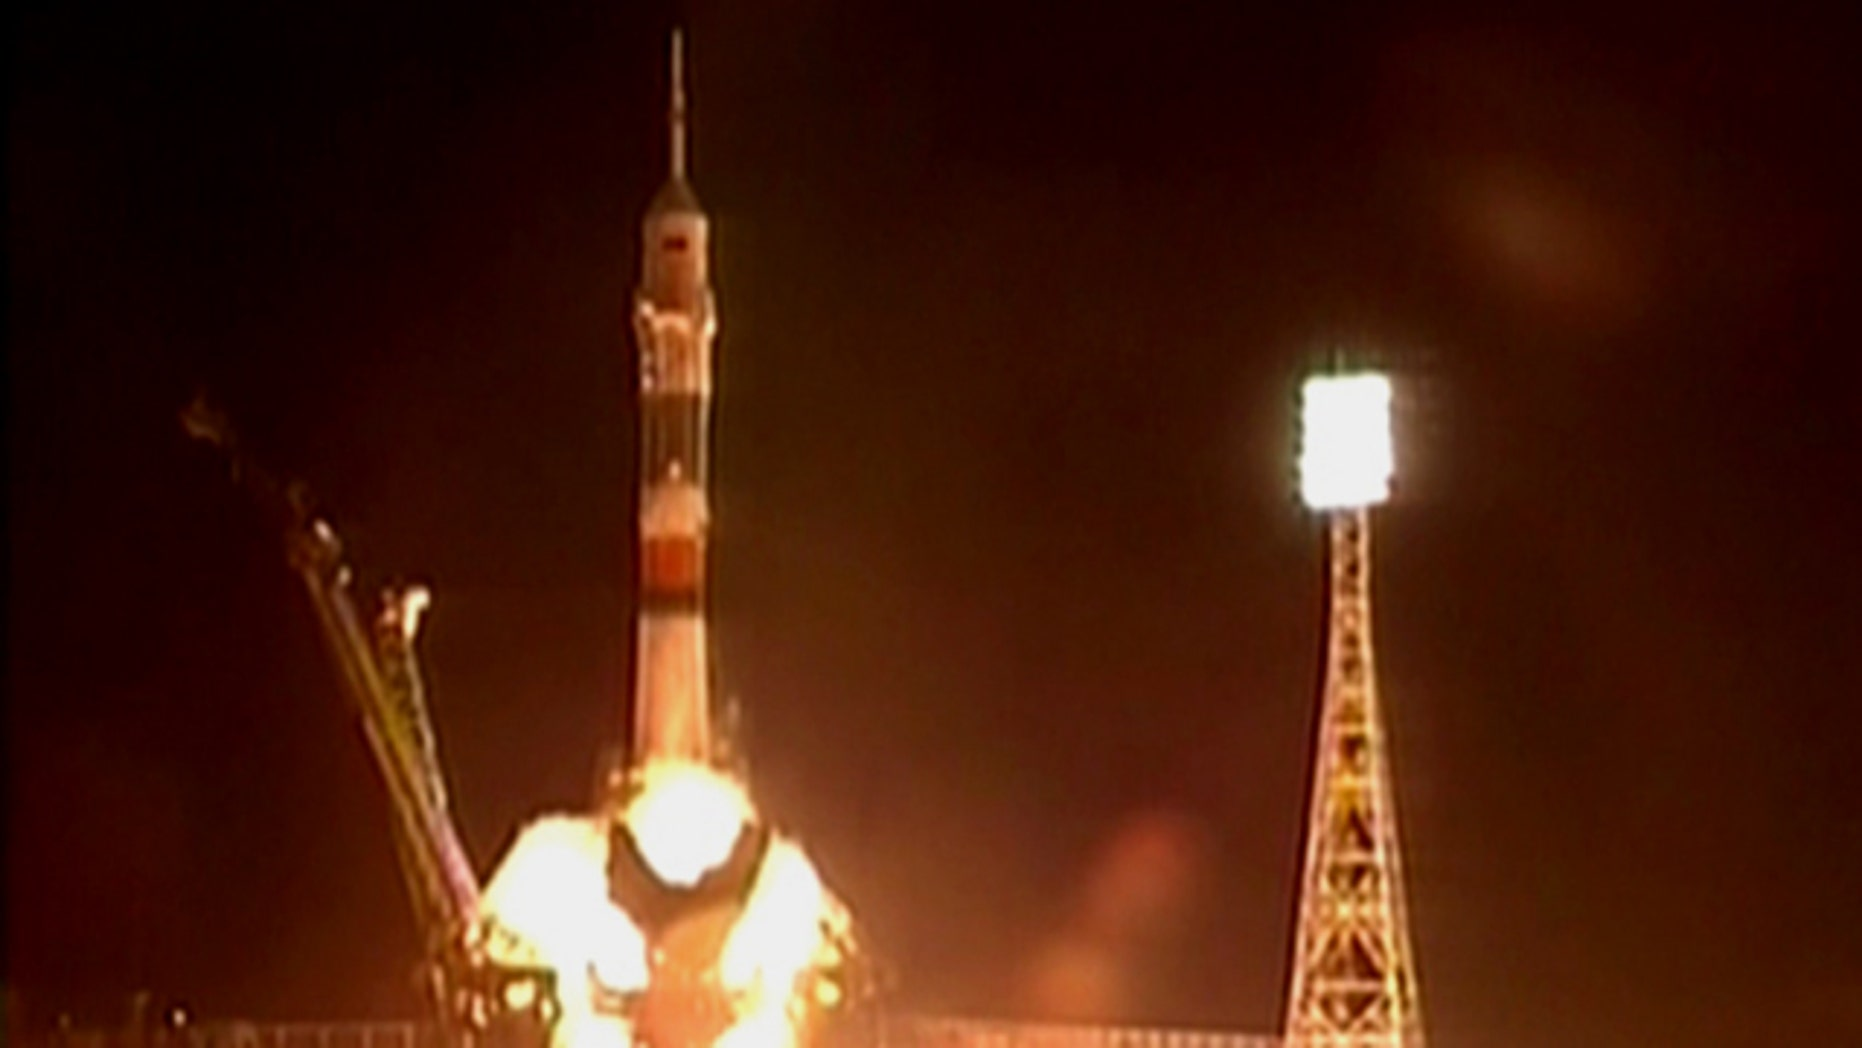 The new Soyuz TMA-01M blasts off with a crew of three astronauts from the Baikonur Cosmodrome in Kazakhstan at 7:10 p.m. EDT (2310 GMT) on Oct. 7, 2010.